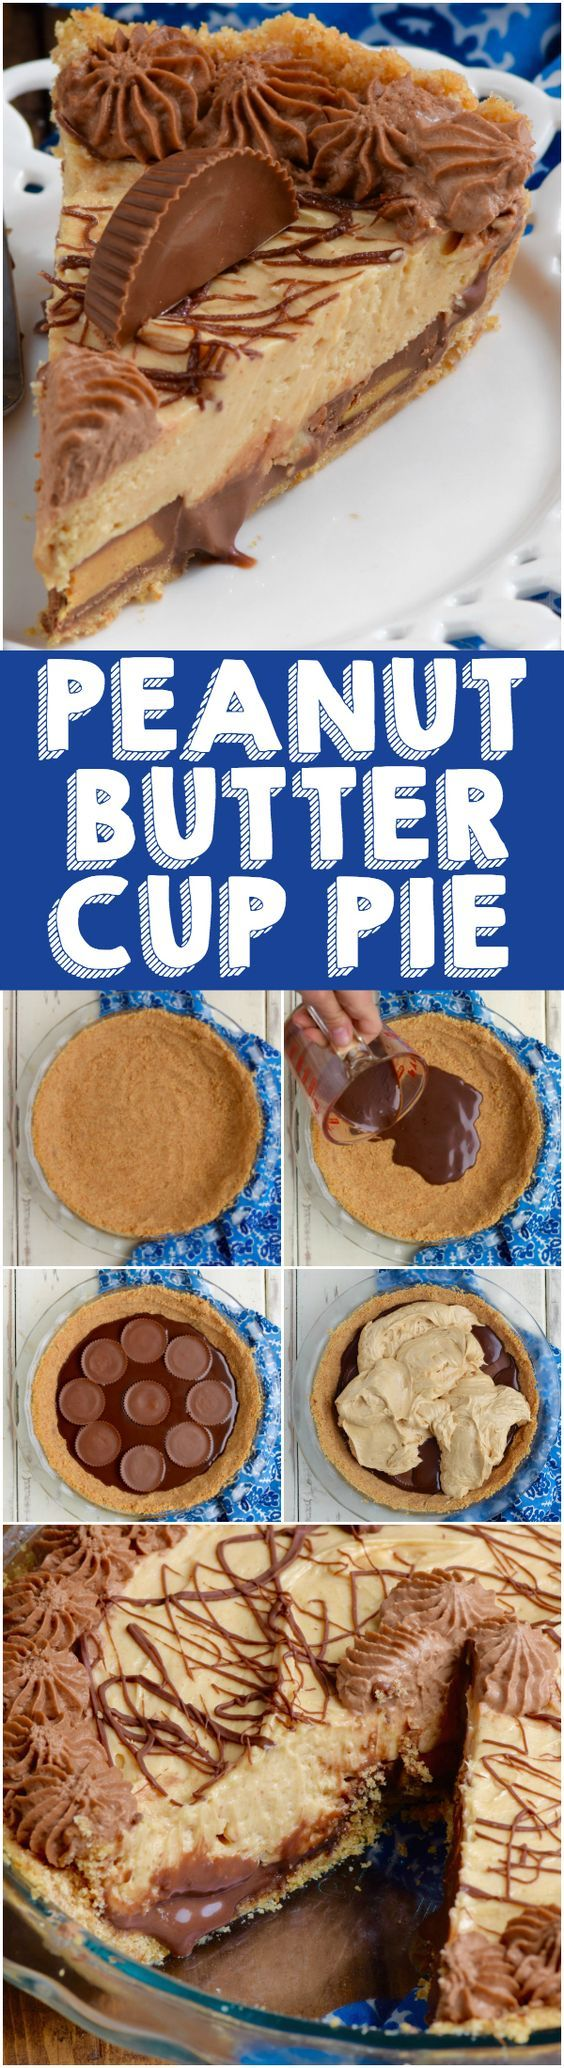 http://wineandglue/2016/05/peanut-butter-cup-pie.html